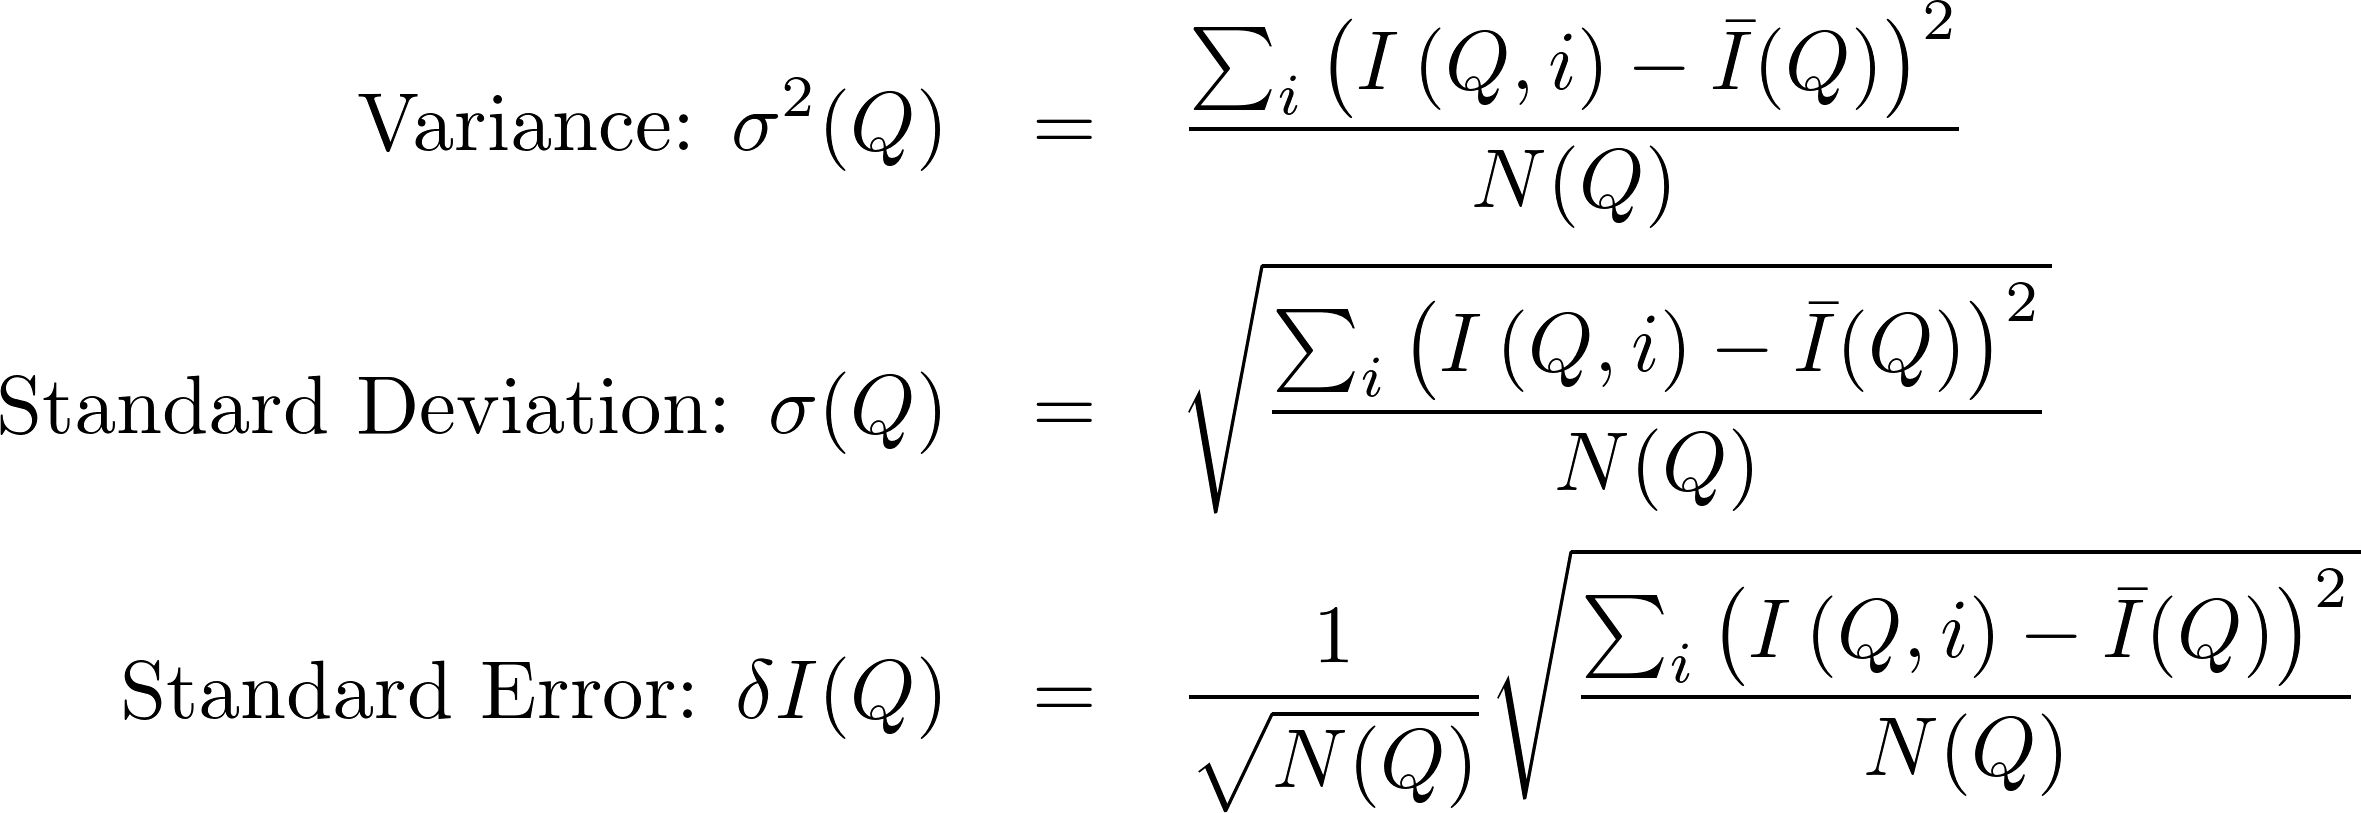 Standard Error For Weighted Values